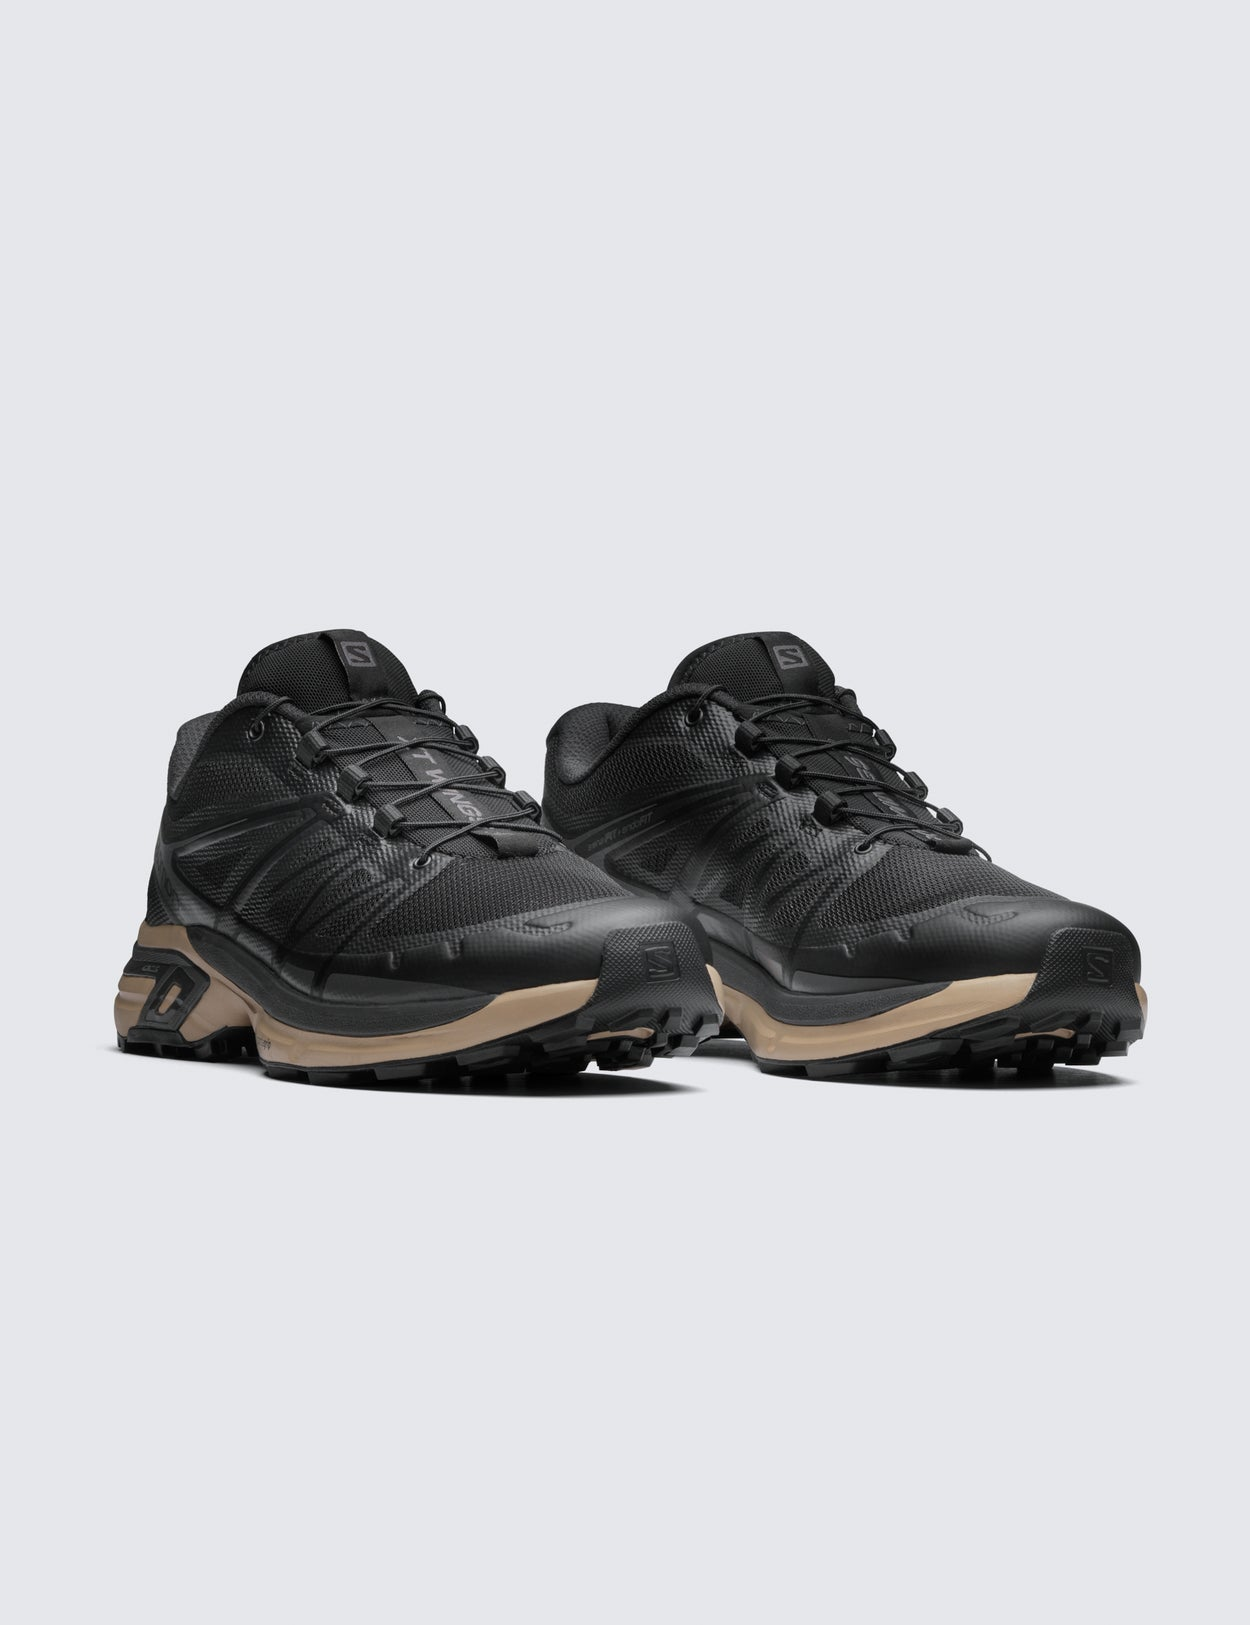 MAGNET BLACK XT-WINGS 2 ADVANCED SNEAKERS